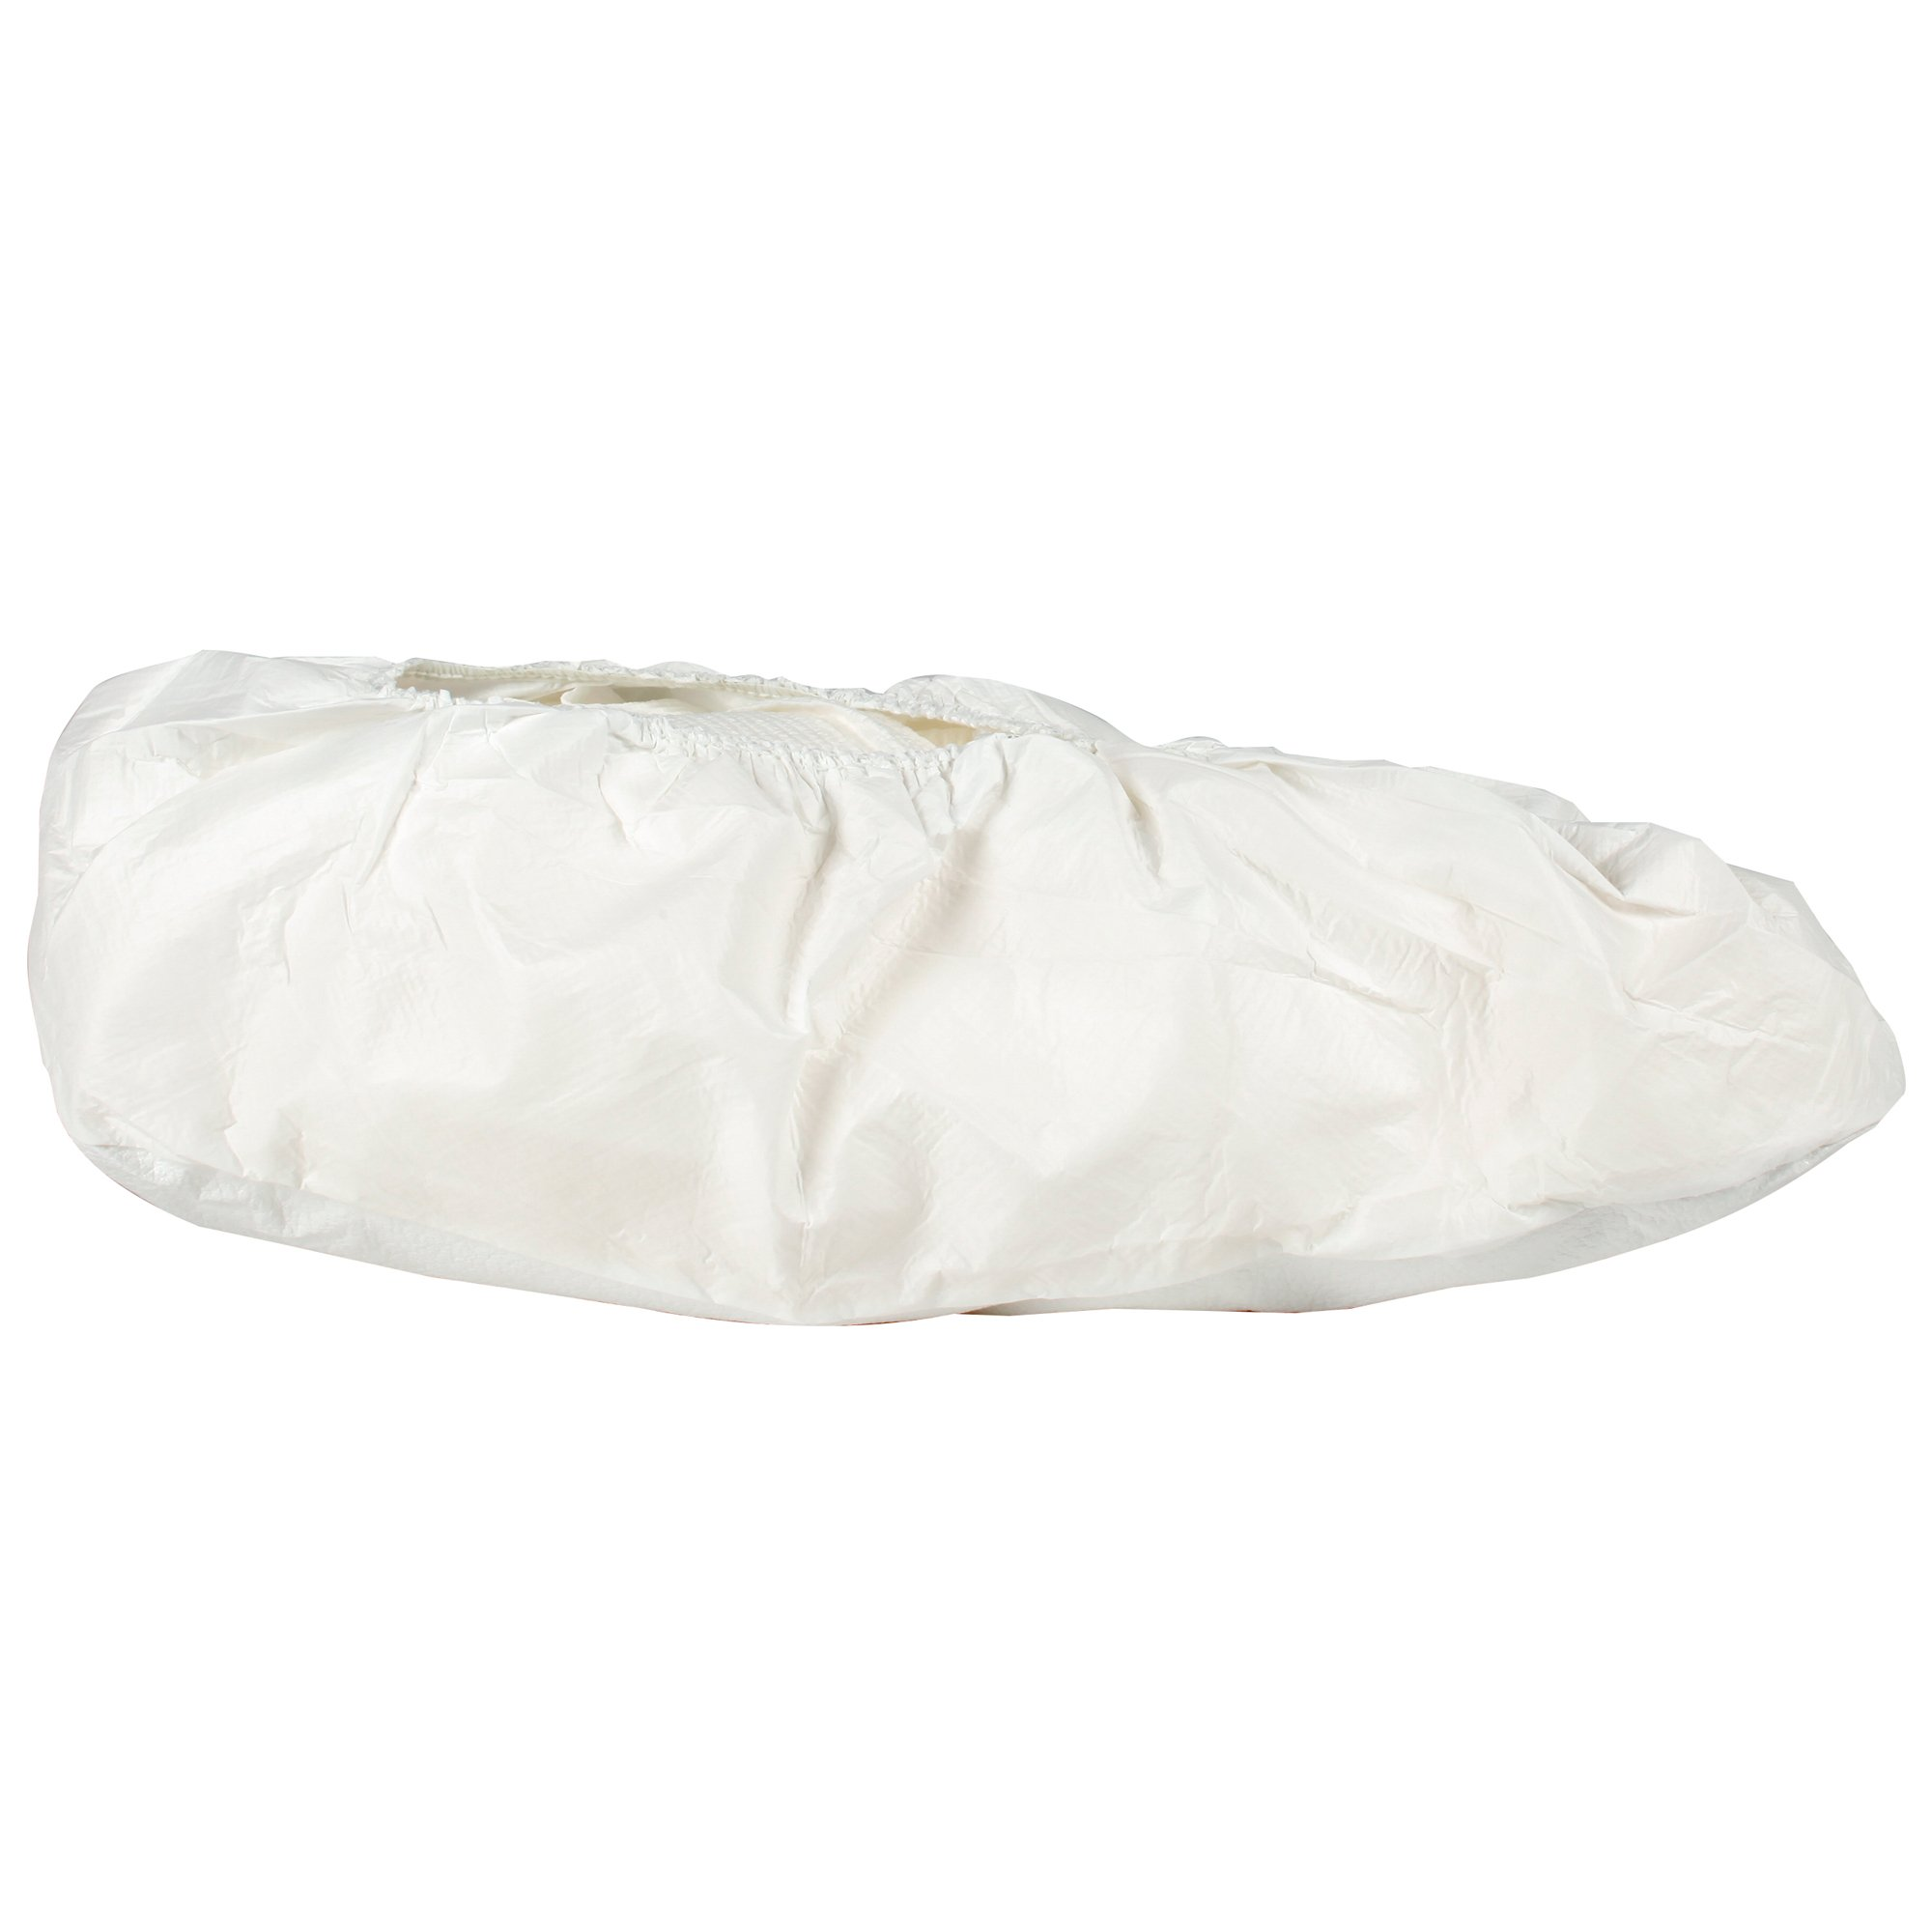 Kleenguard A40 Shoe Cover (44494), XL / 2XL Disposable Shoe Covers, White, 400 Units / Case by Kimberly-Clark Professional (Image #2)